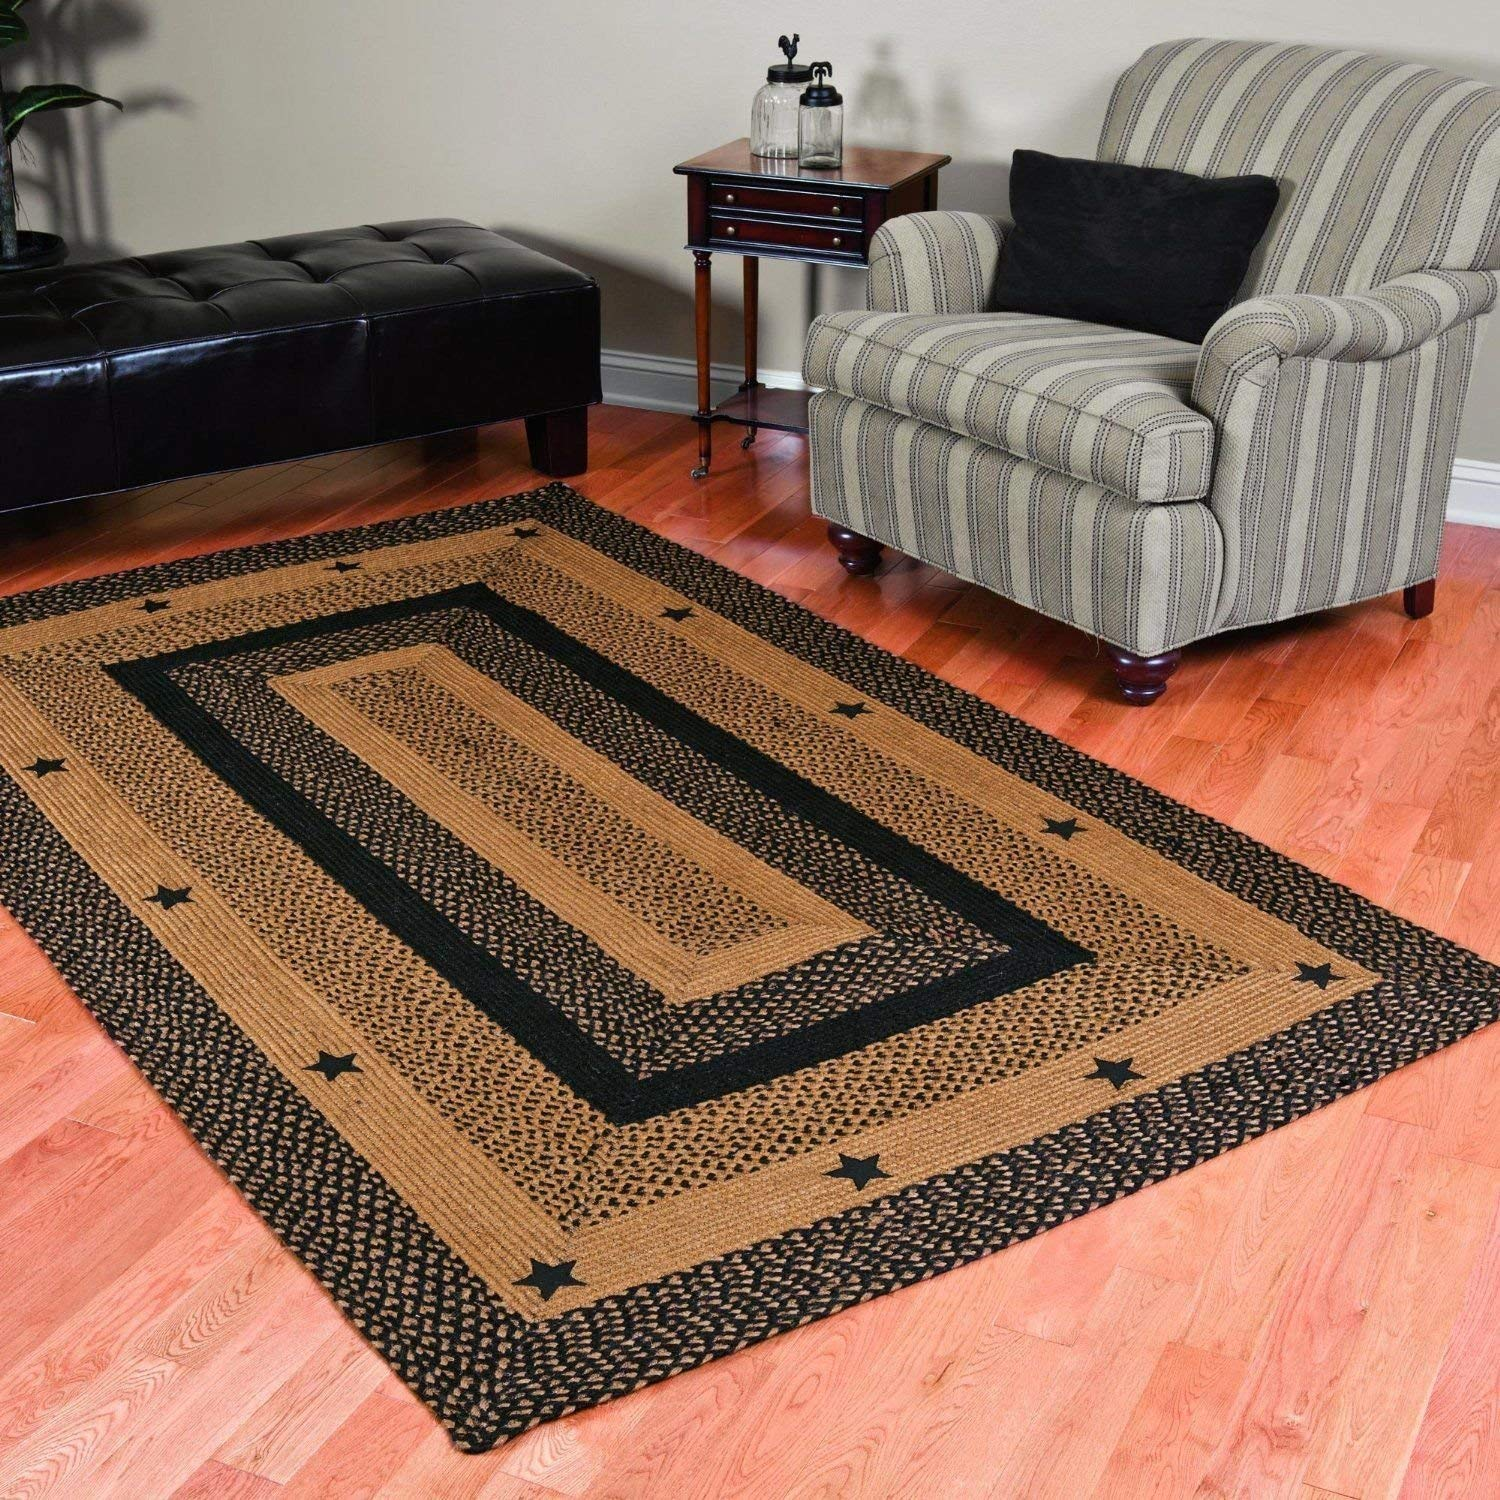 braided area rugs amazon.com: ihf home decor primitive star black design braided area rug 4 x BFXXJYH